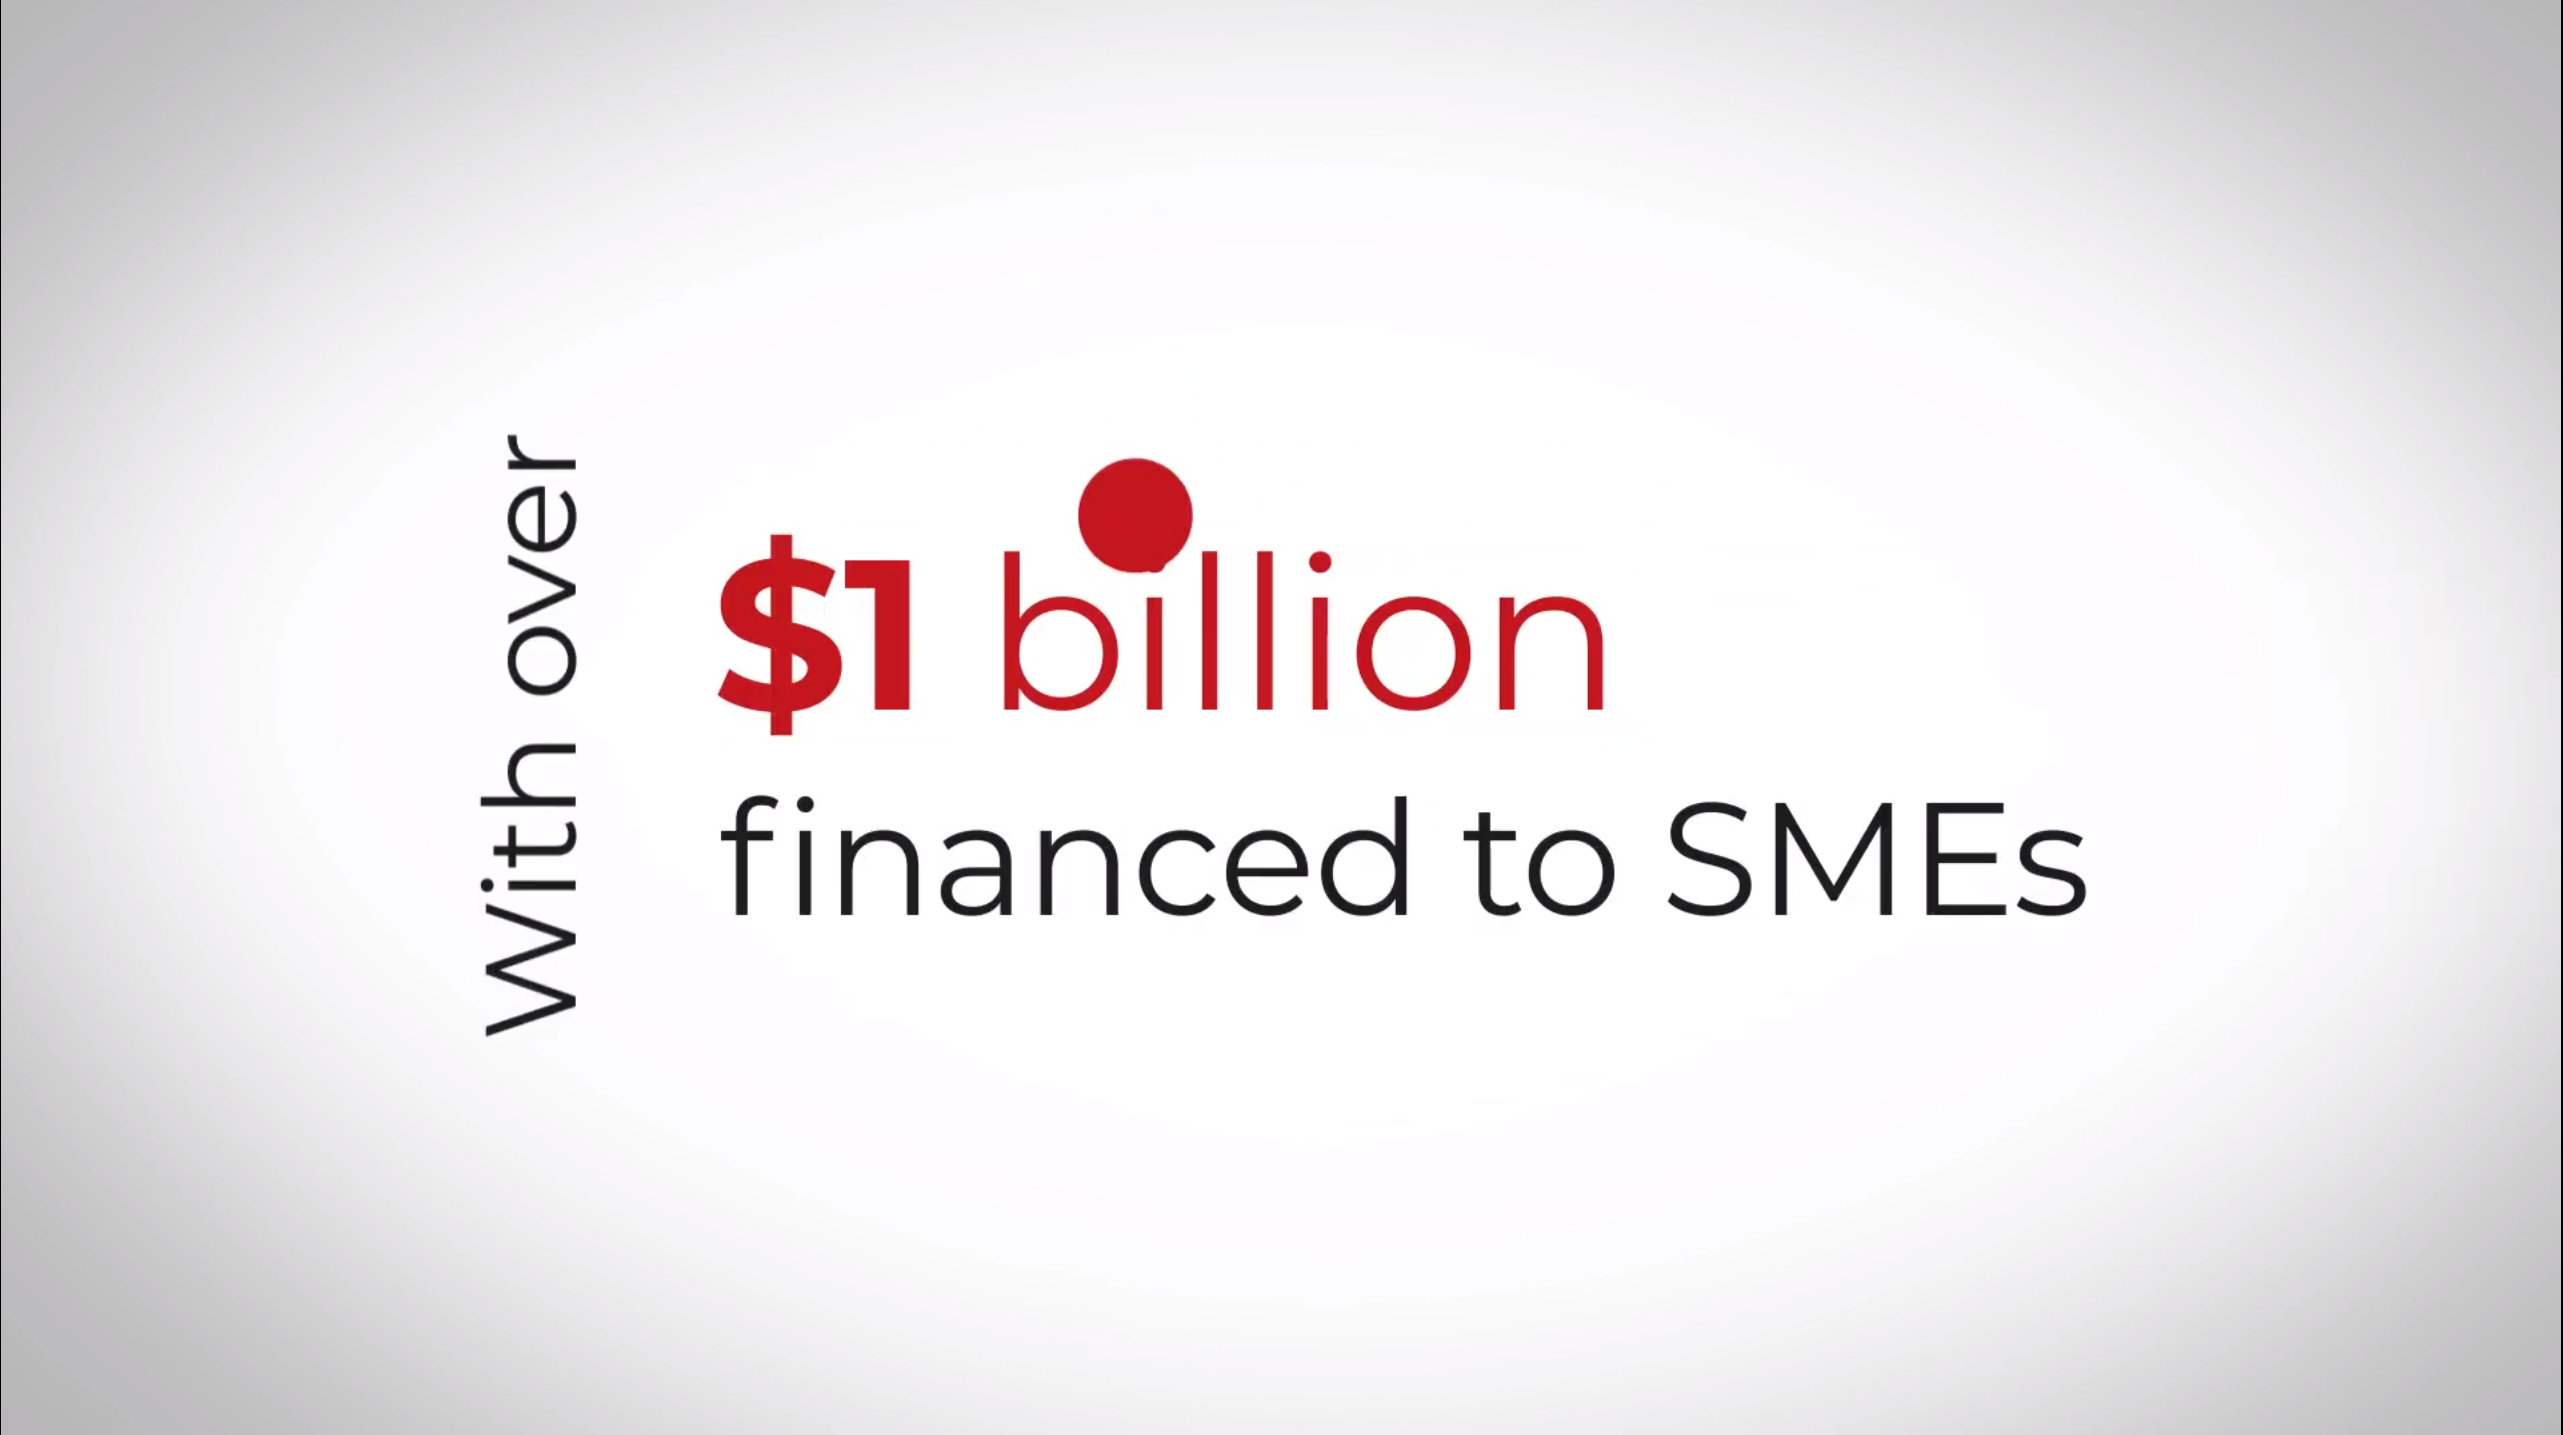 over-1b-financed-to-smes